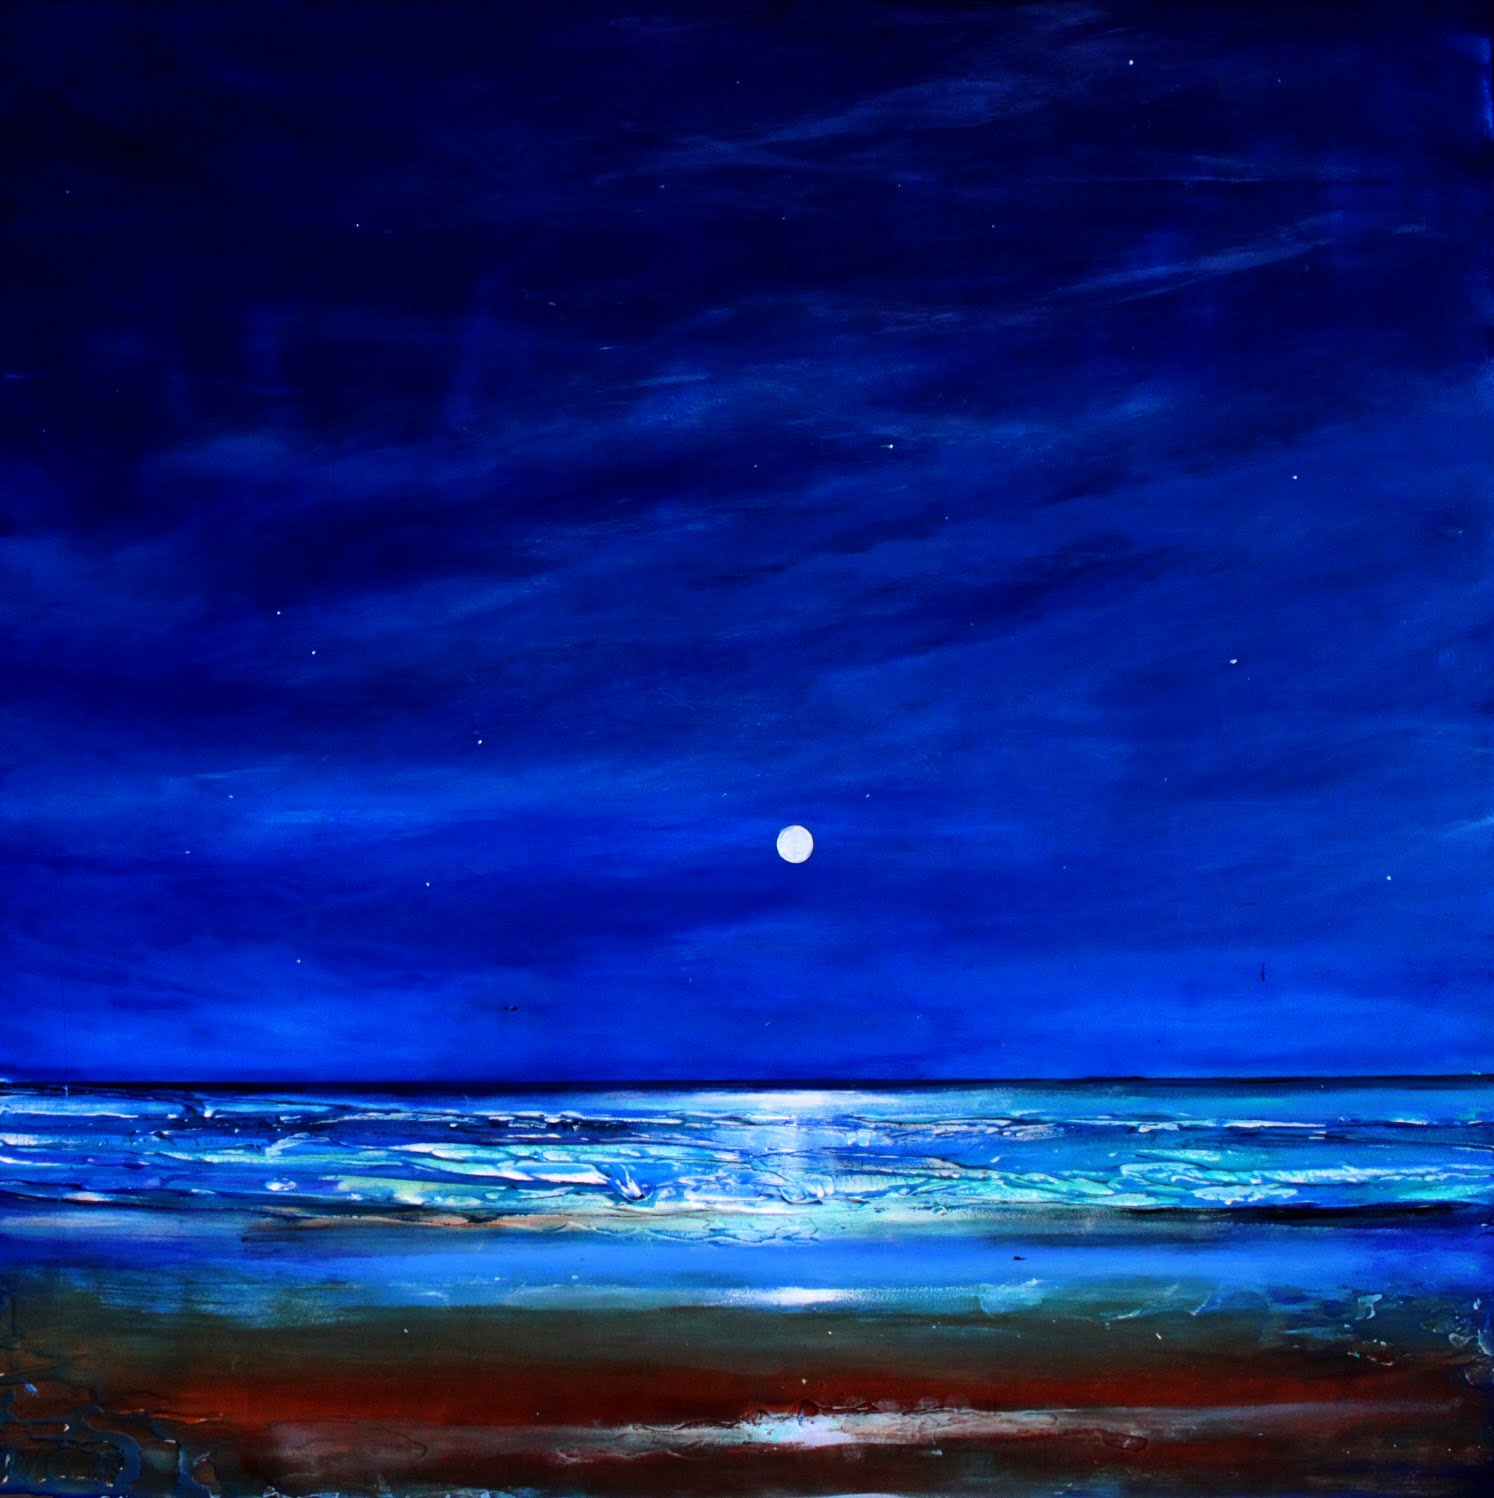 Check Out This Soothing Nighttime Beach Landscape Can You Feel The Soft Breeze Is An Original Acrylic On Wood Panel 20x20